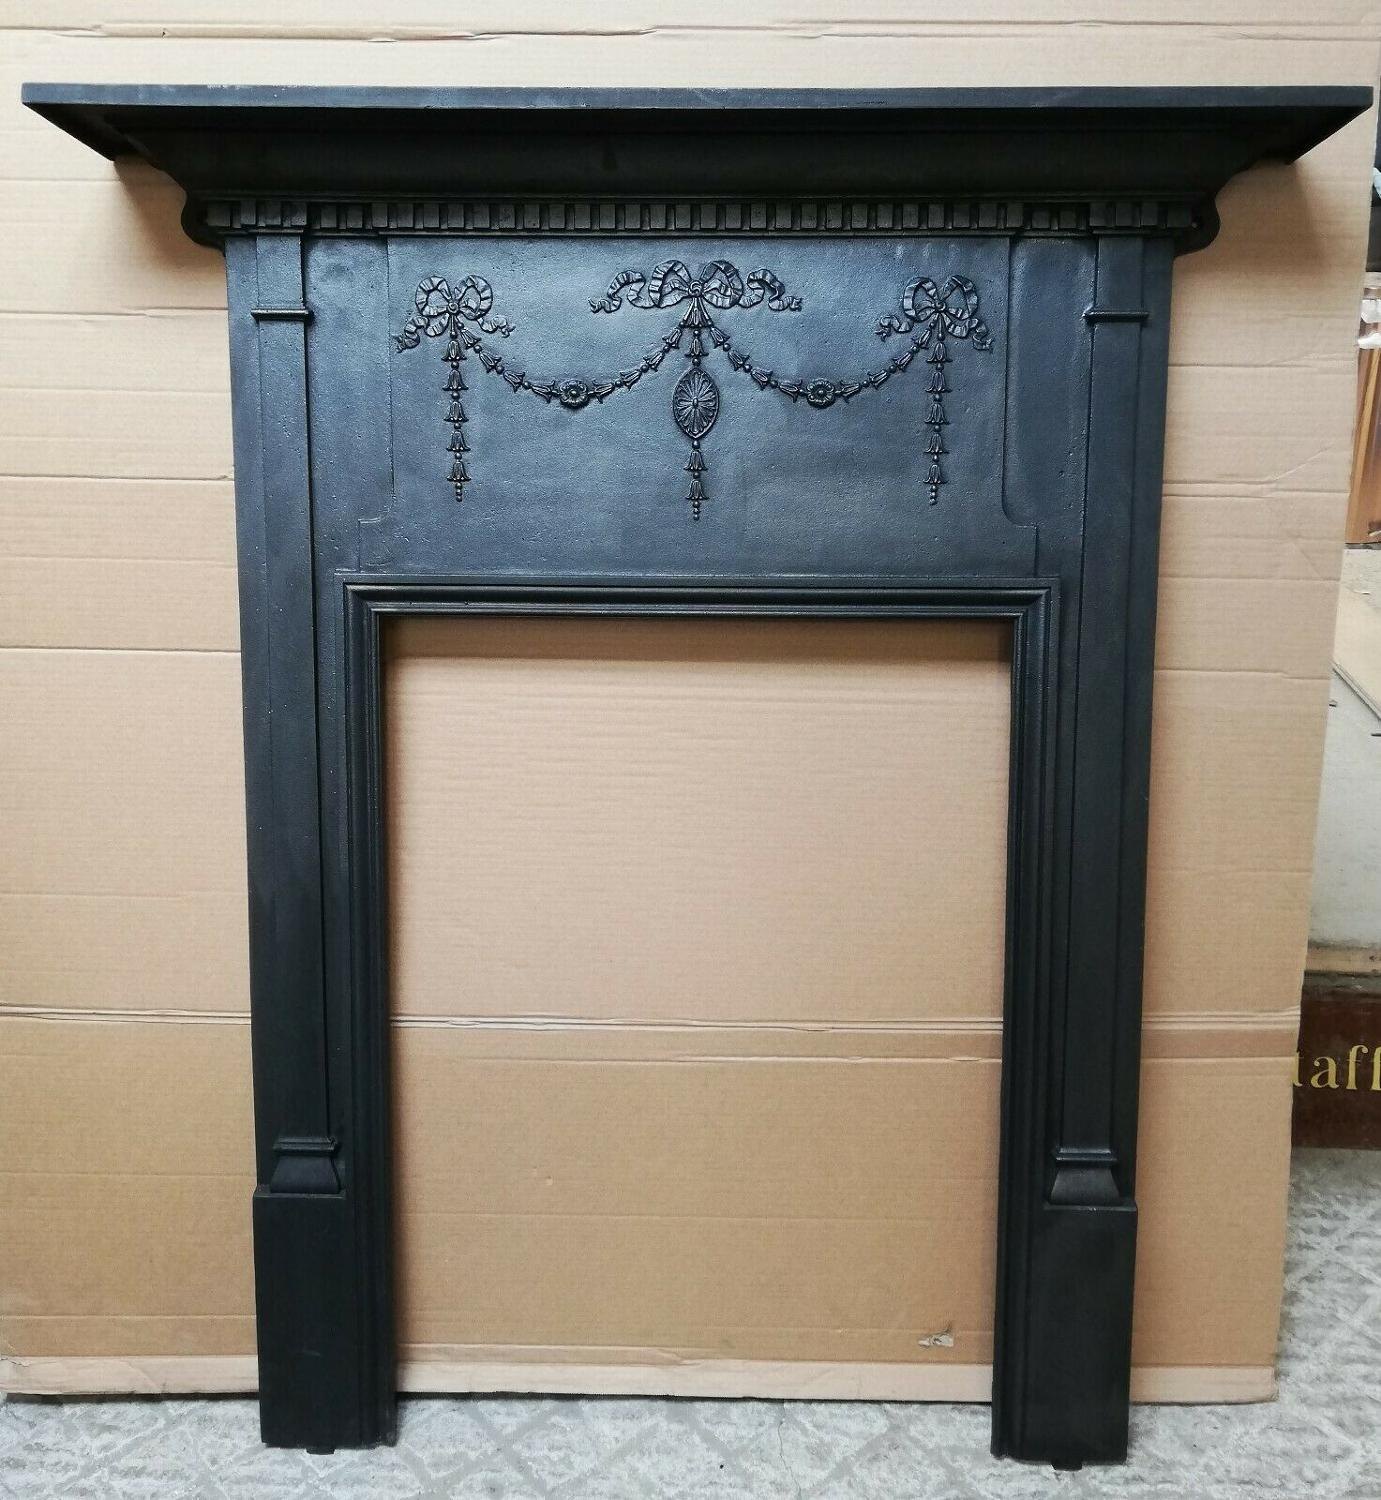 FS0080 VICTORIAN CAST IRON FIRE SURROUND FOR WOOD BURNER